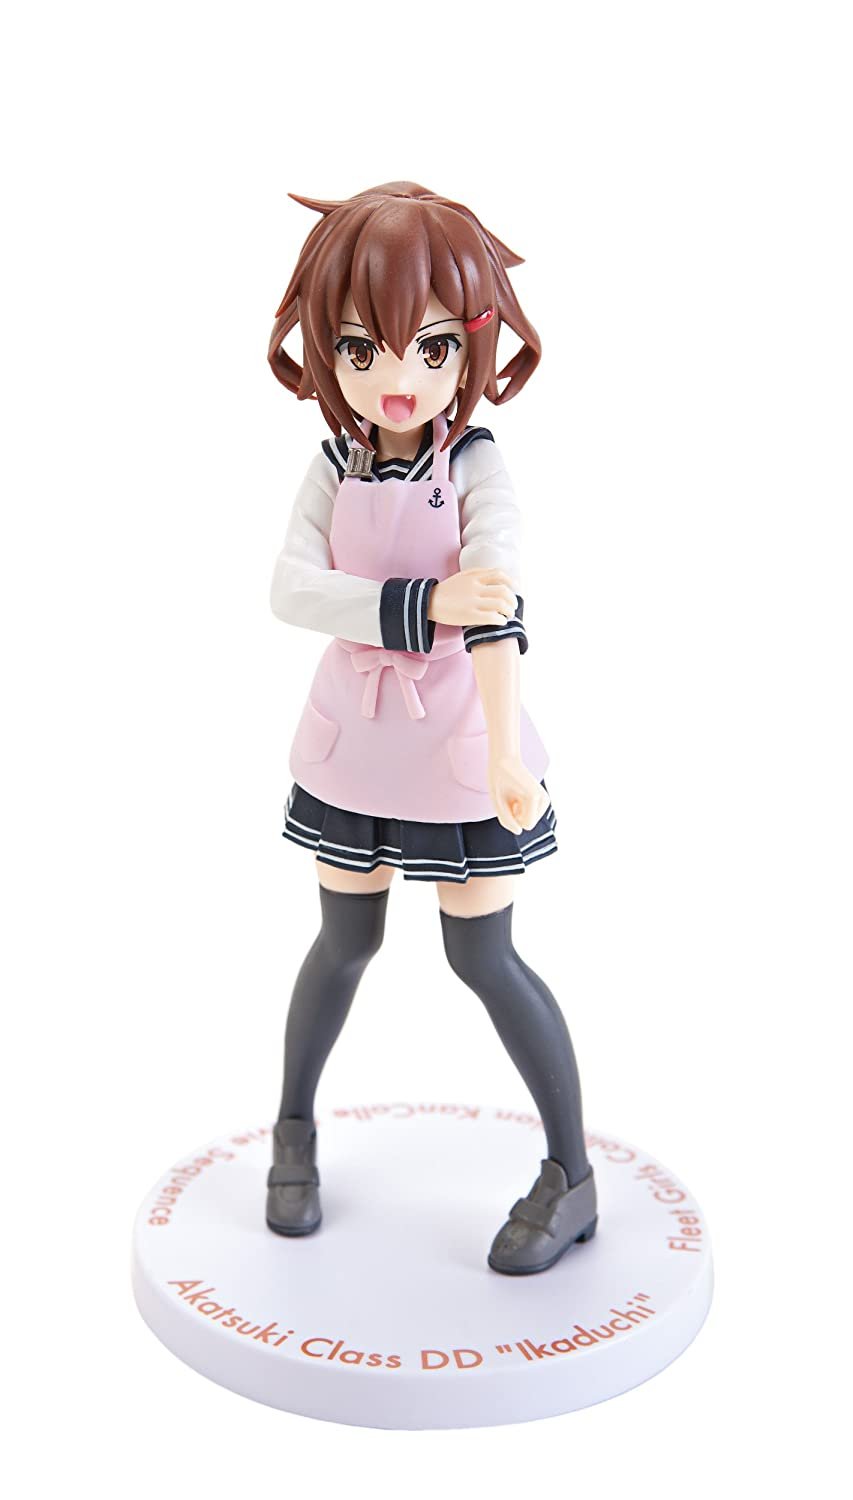 The Movie Sega KanColle Ikazuchi Premium Figure SG/_B01N2P016P/_US